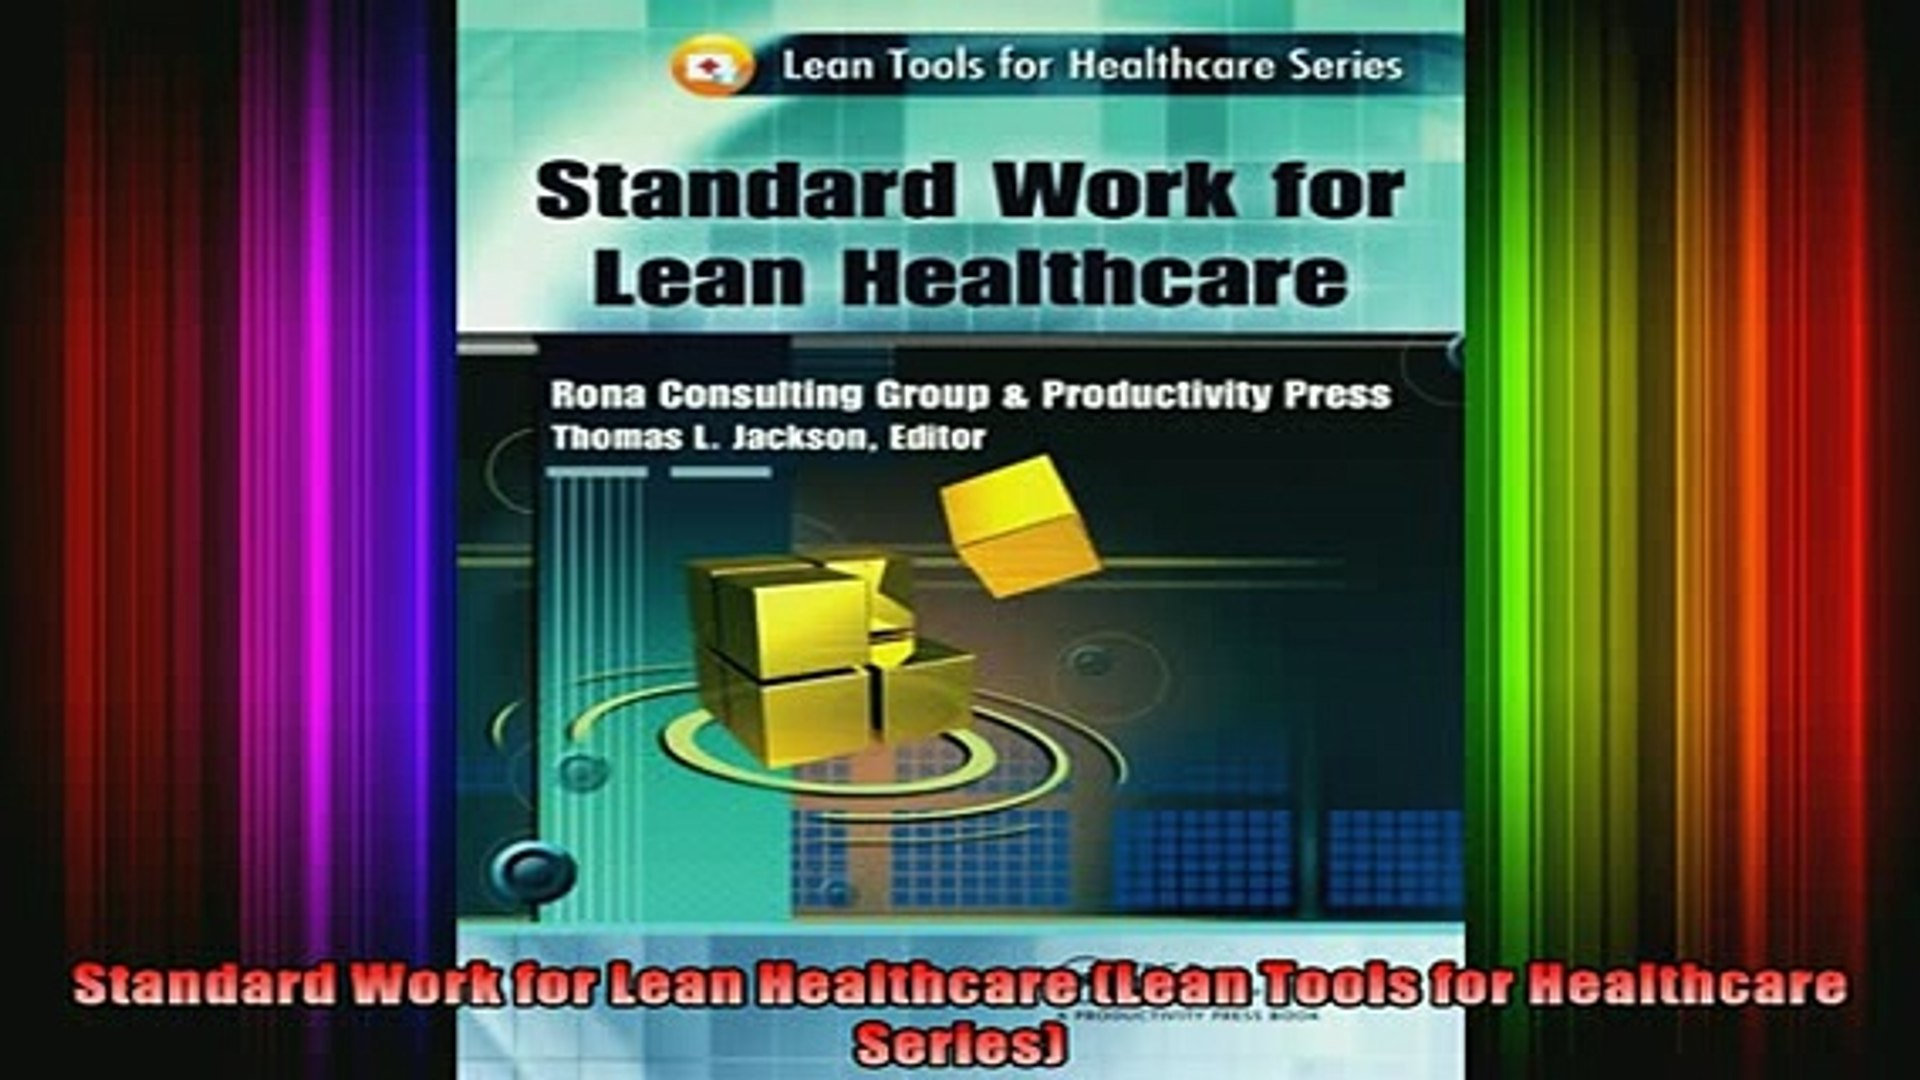 Standard Work for Lean Healthcare (Lean Tools for Healthcare Series)